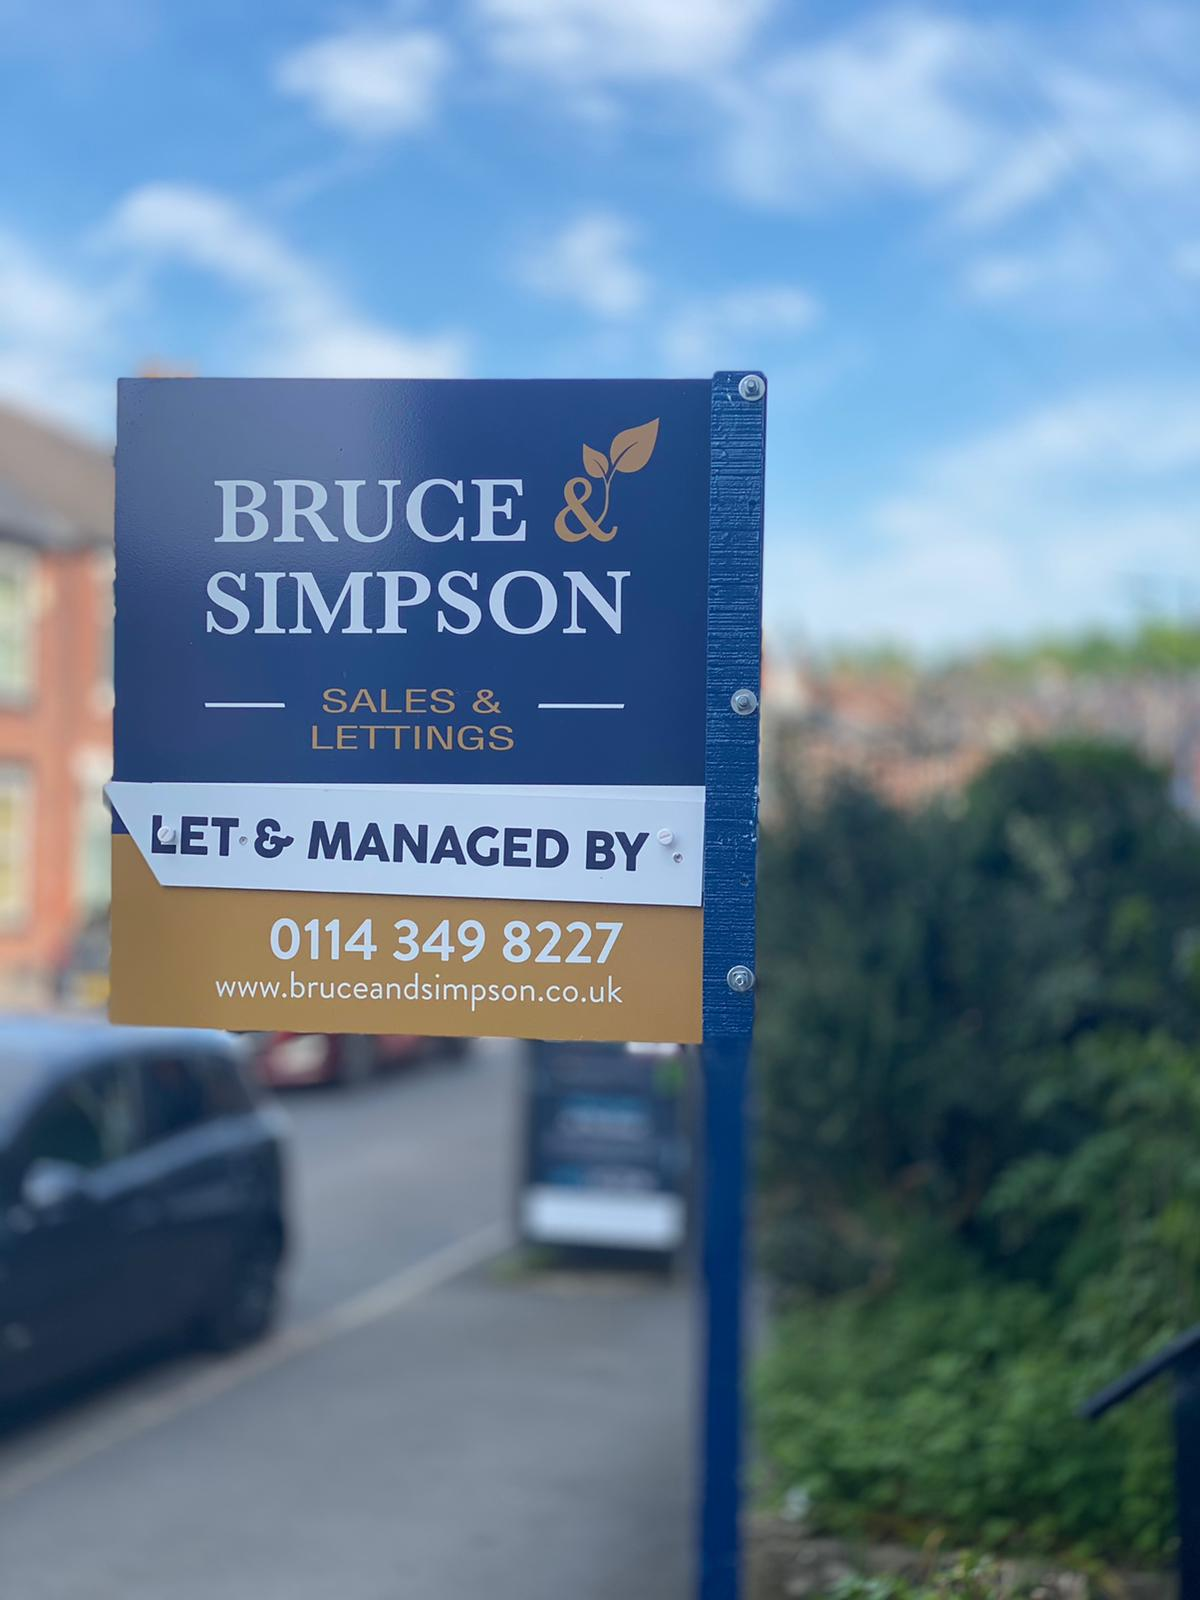 Let & Managed by Bruce & Simpson